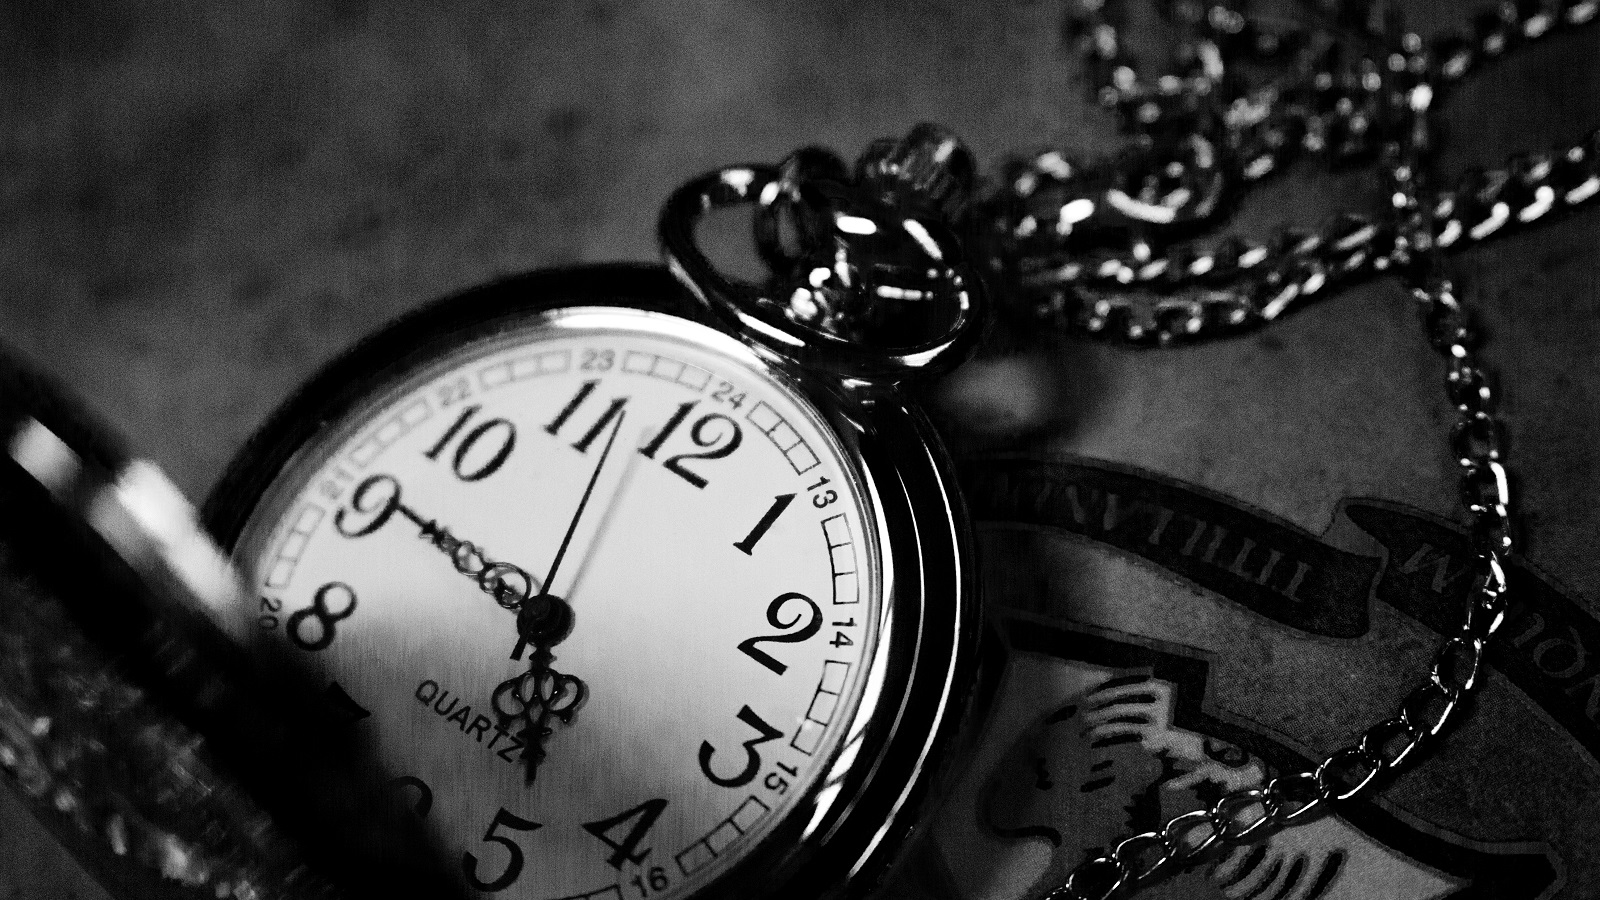 A pocket watch representing the time set for your RPO and RTO